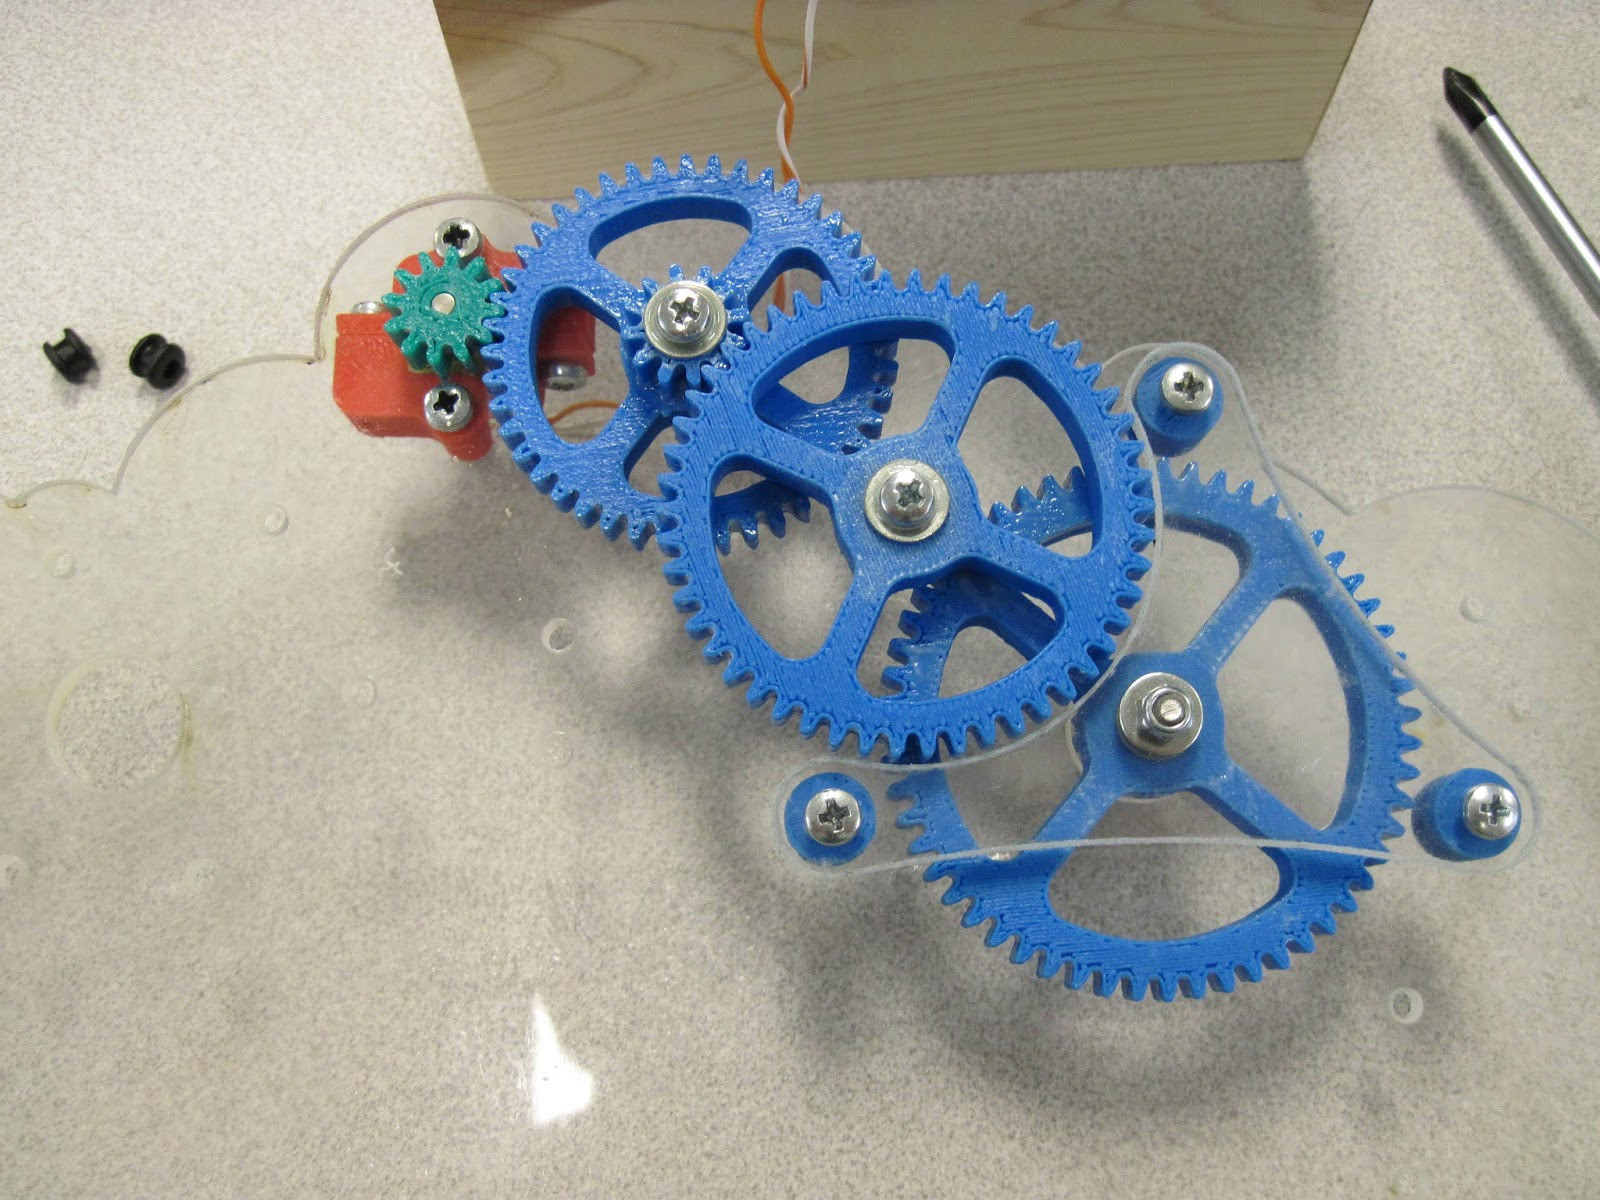 Brian Zweerink's Awesome Blog: Making gears for 3D printing